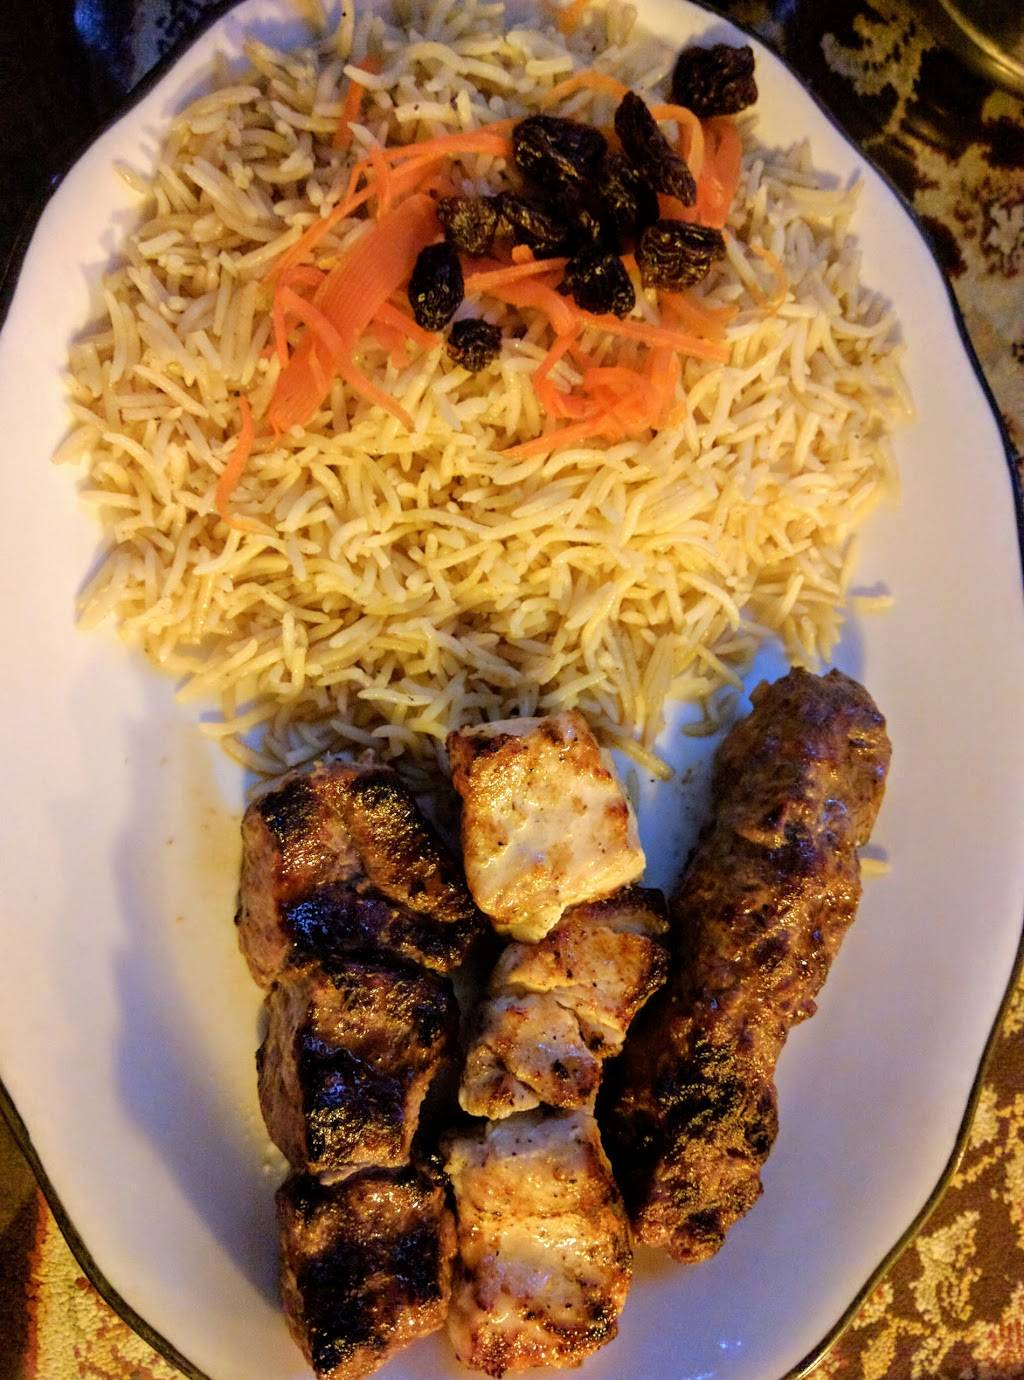 Afghan Kebab House | restaurant | 5224, 1345 2nd Ave, New York, NY 10021, USA | 2125172776 OR +1 212-517-2776